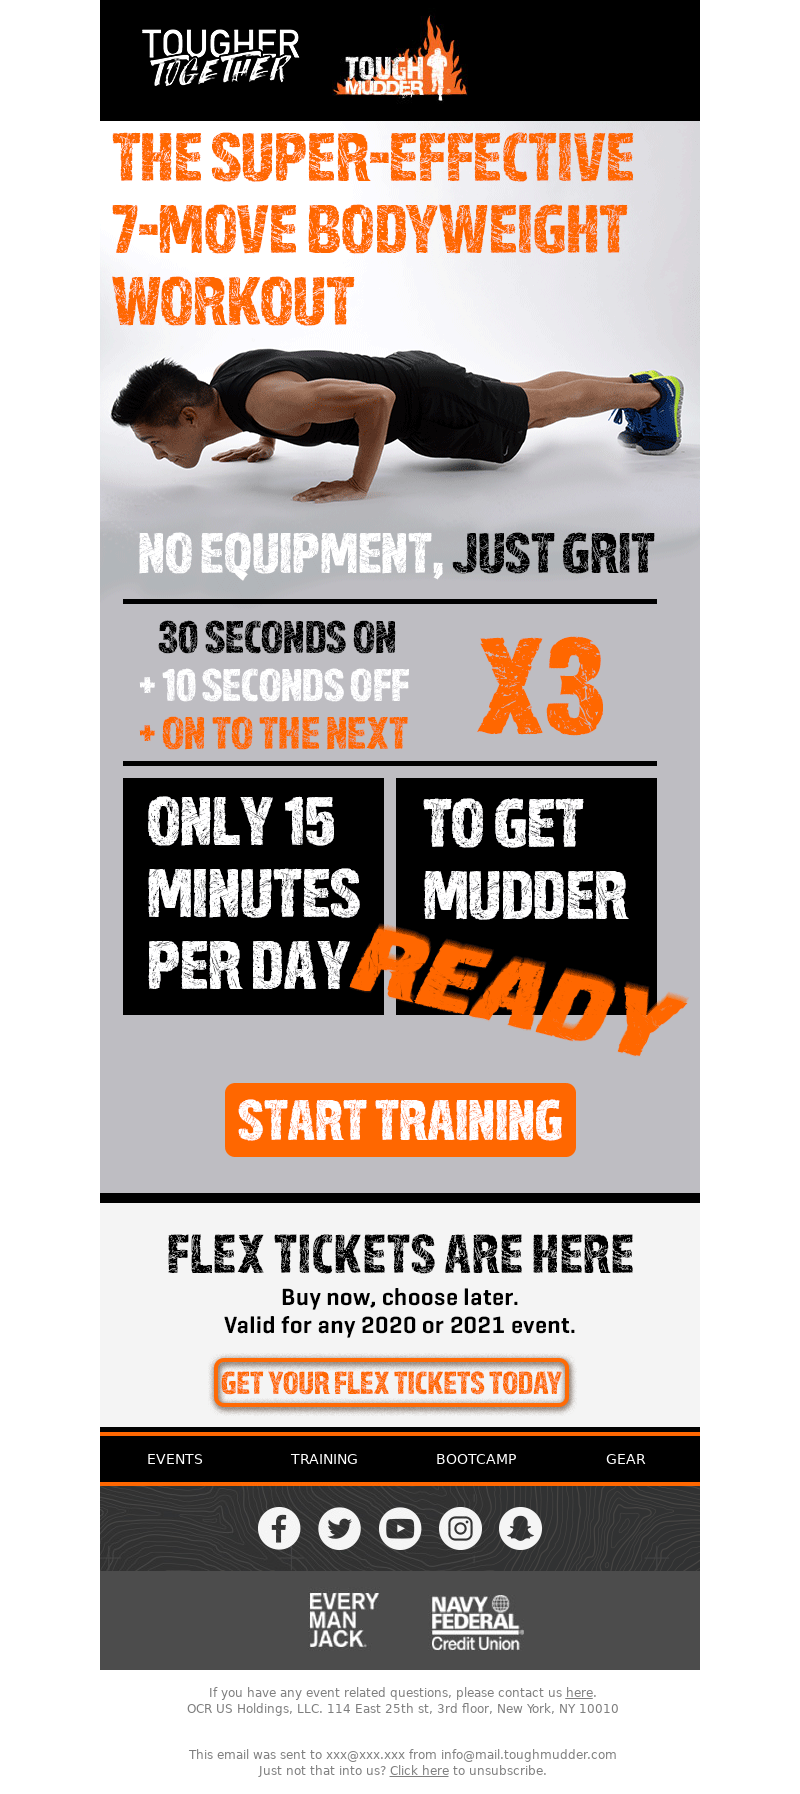 Tough Mudder - 💪 No equipment for this workout, just grit